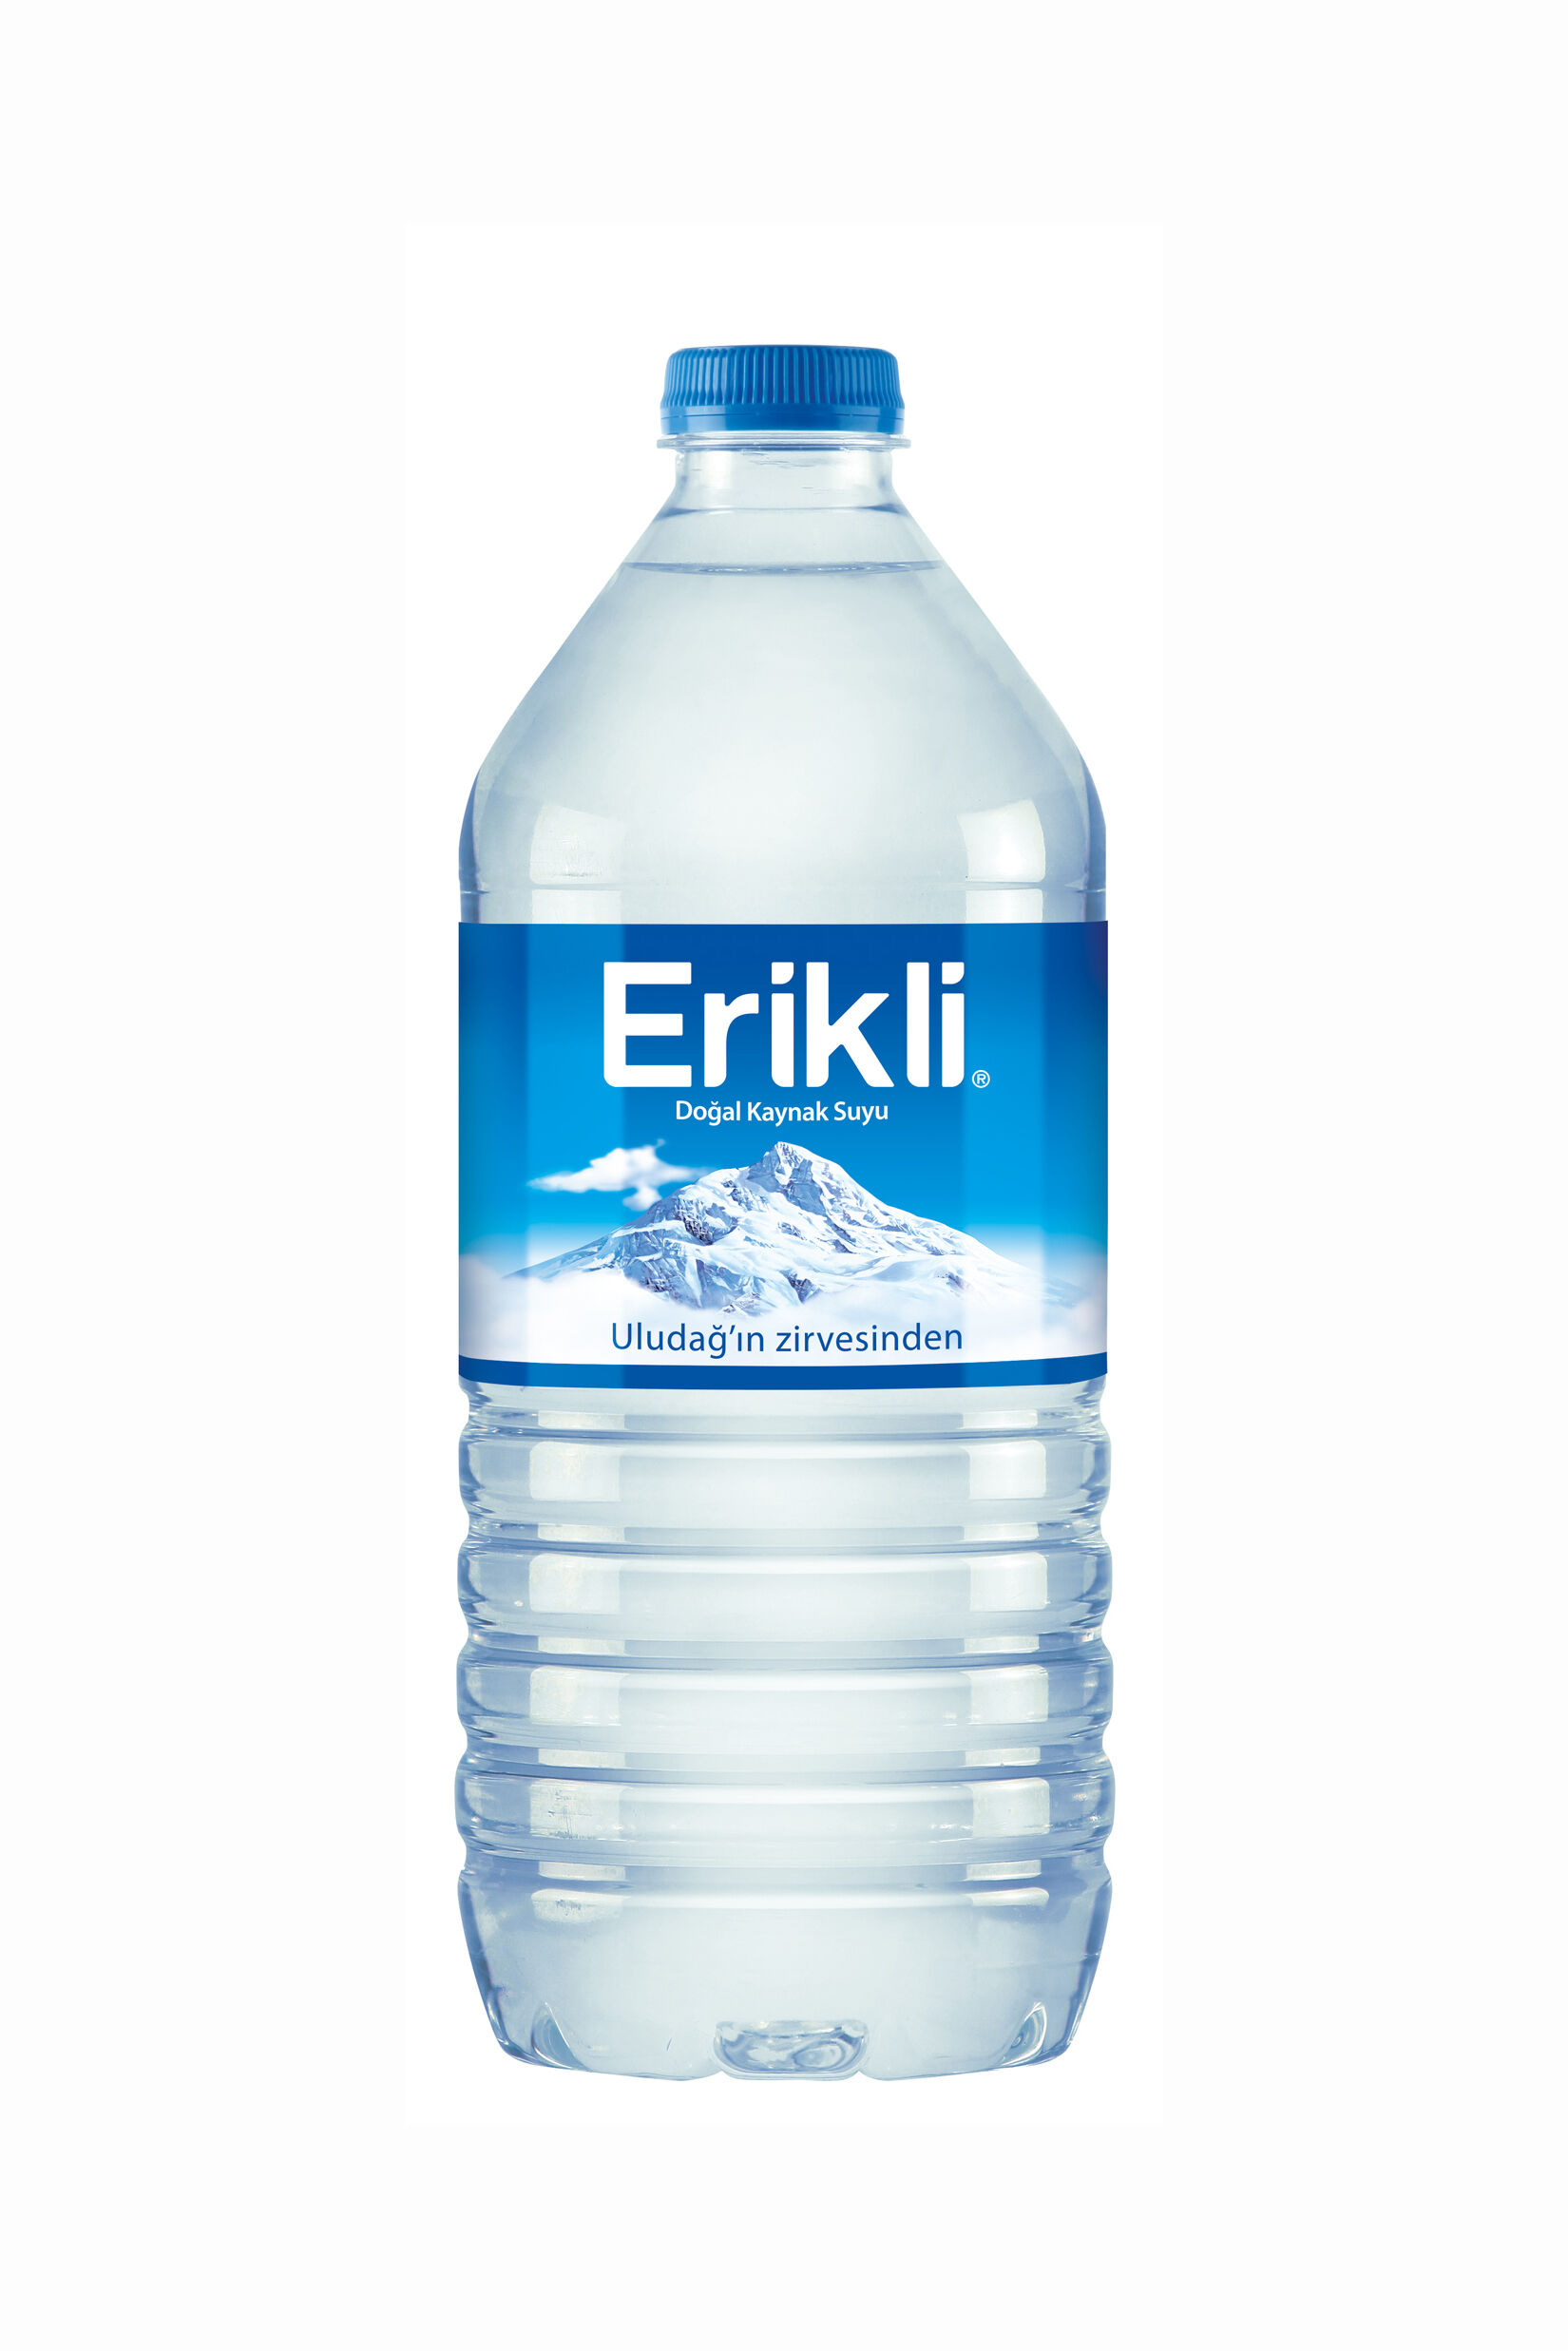 Image for Erikli Su 1 Lt from Bursa